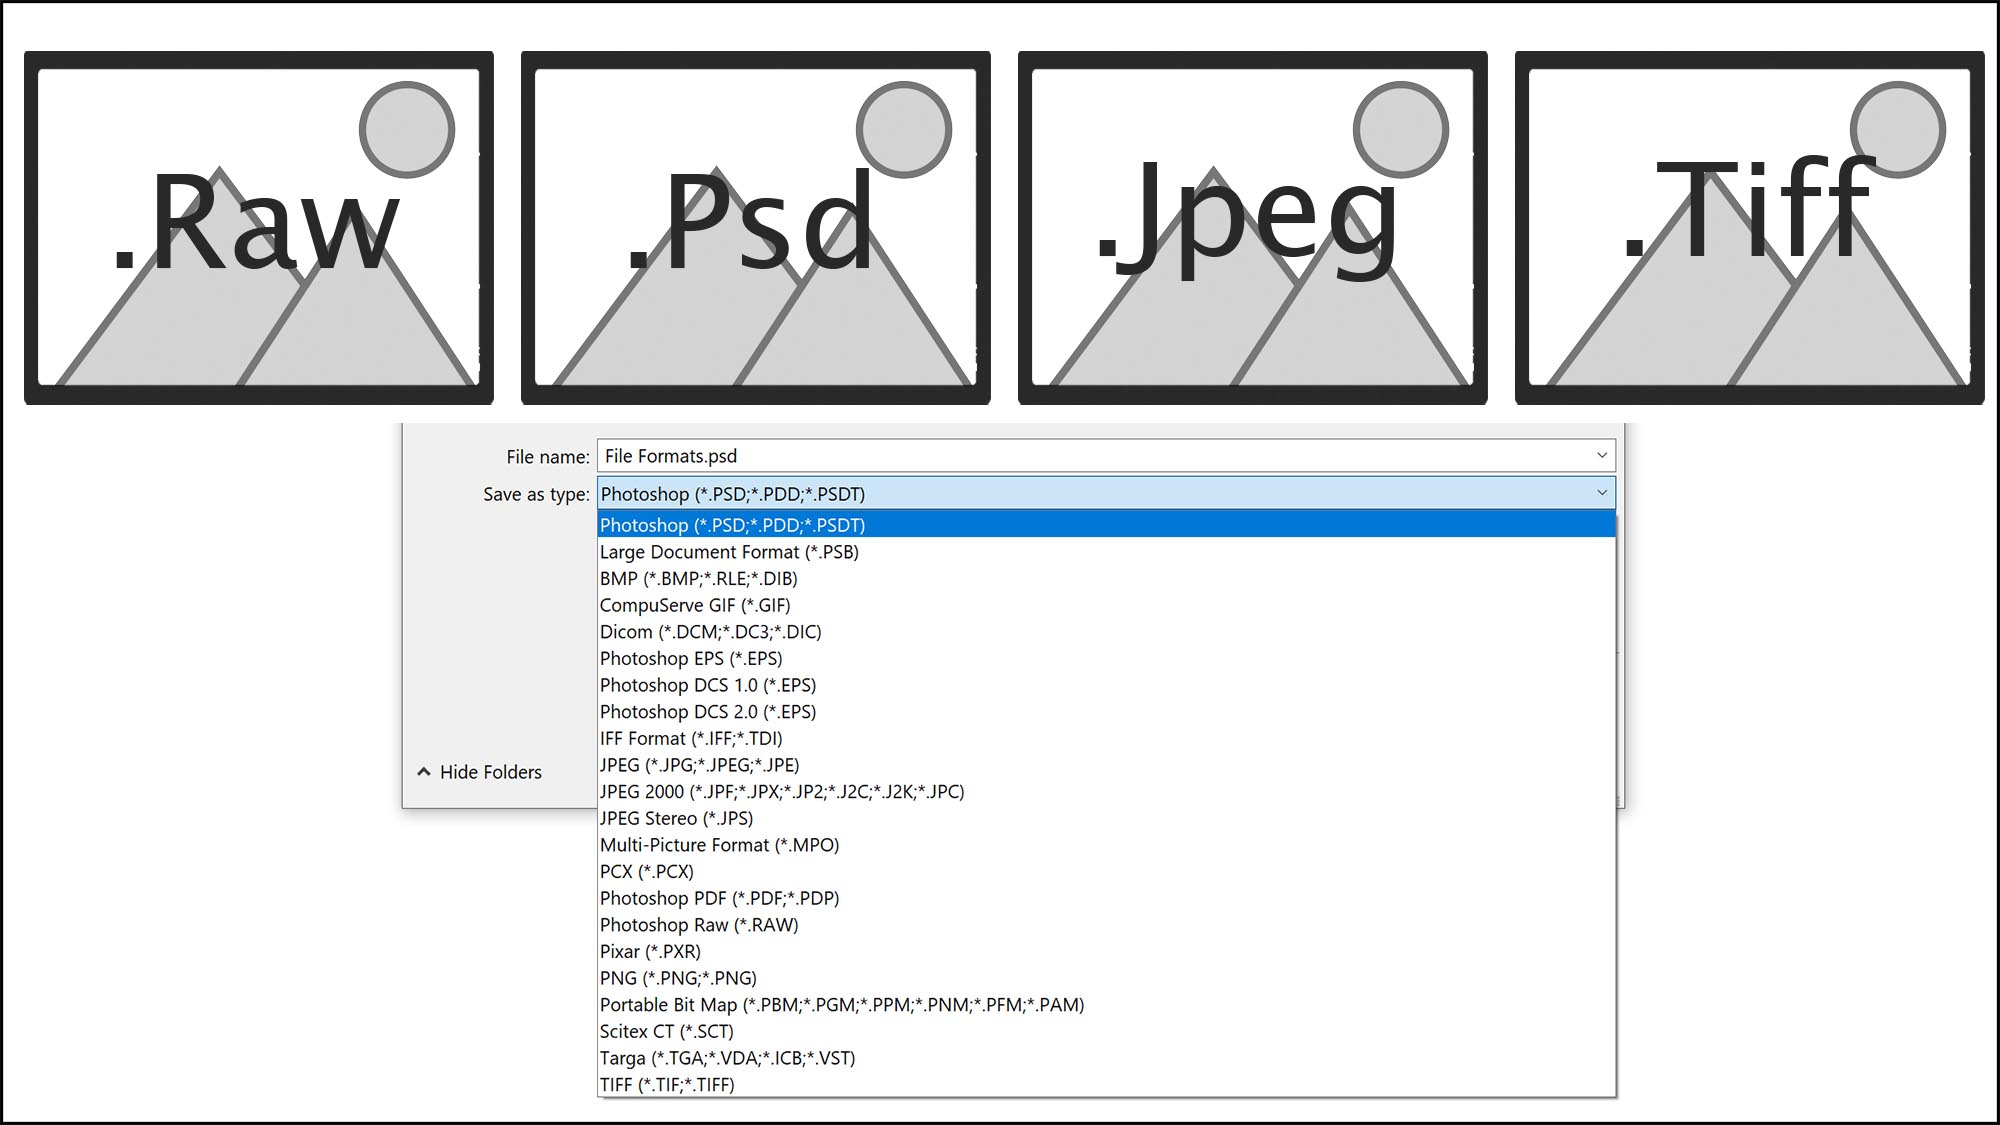 Lesson 4 – Saving in different file formats - Photoshop seems to give you endless ways to save files! In this lesson you'll learn what ones suit the photographer and why you use different file formats for different situations such as saving for print or web.